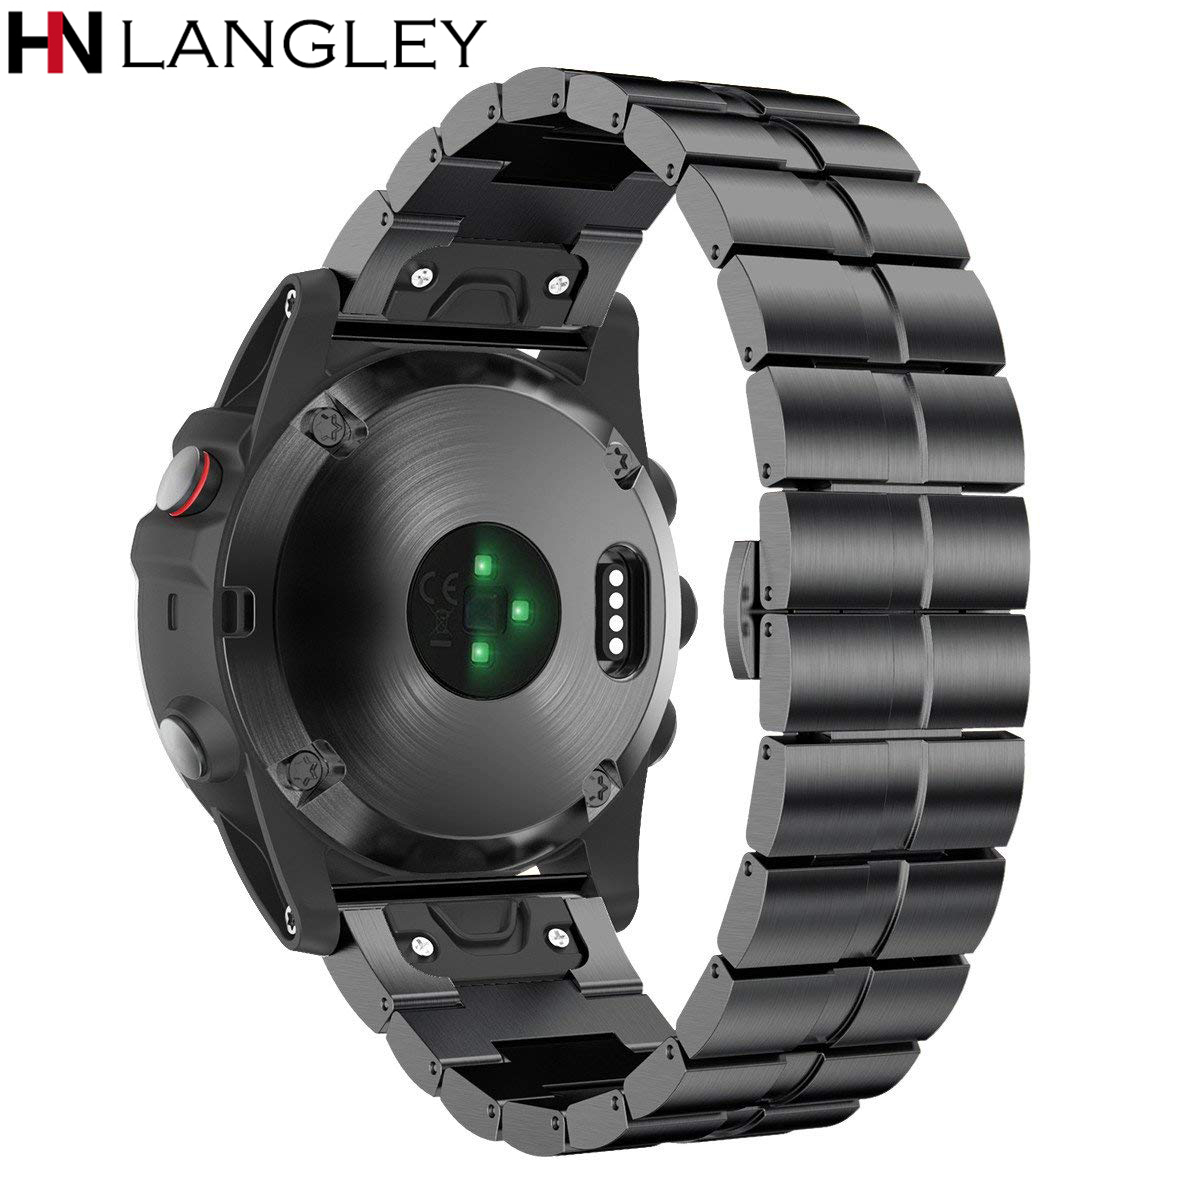 Steel Bands For Garmin Fenix 3 Fenix HR Band 26mm Width Easy Fit Stainless Steel Watch Bands for Garmin Fenix 5X/Fenix 5X Plus